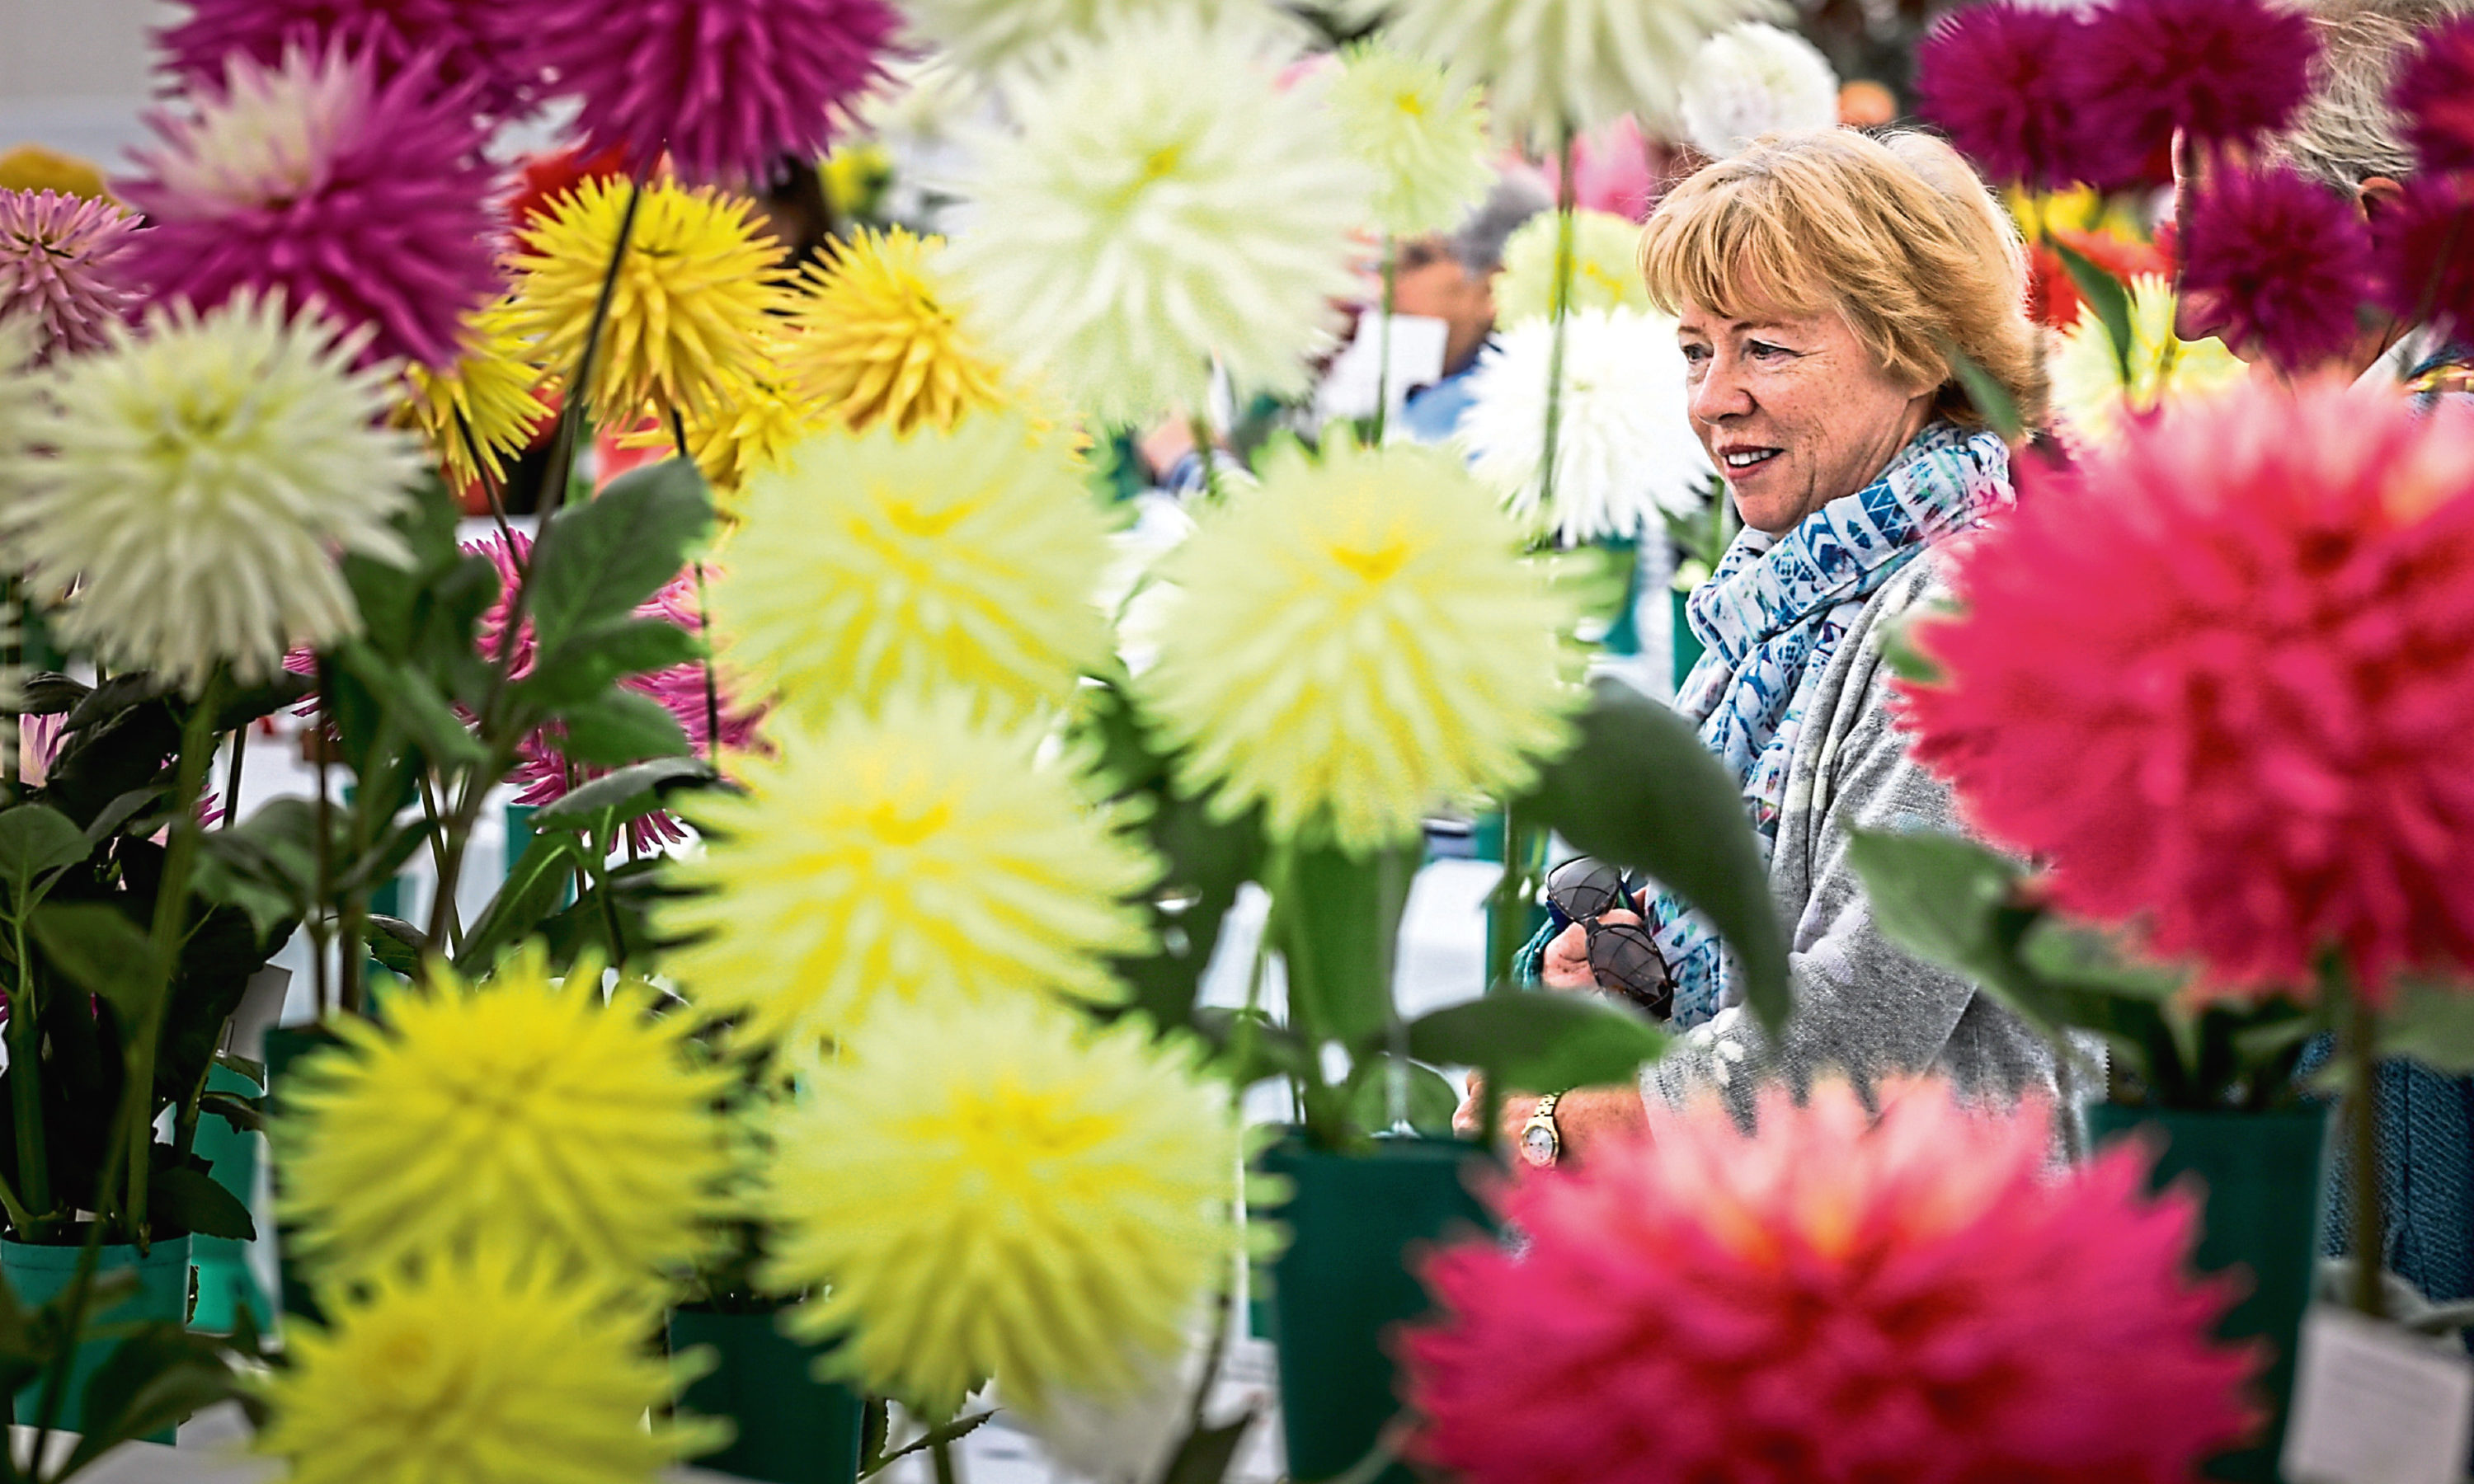 The public admire the flowers that have been submitted for judging.